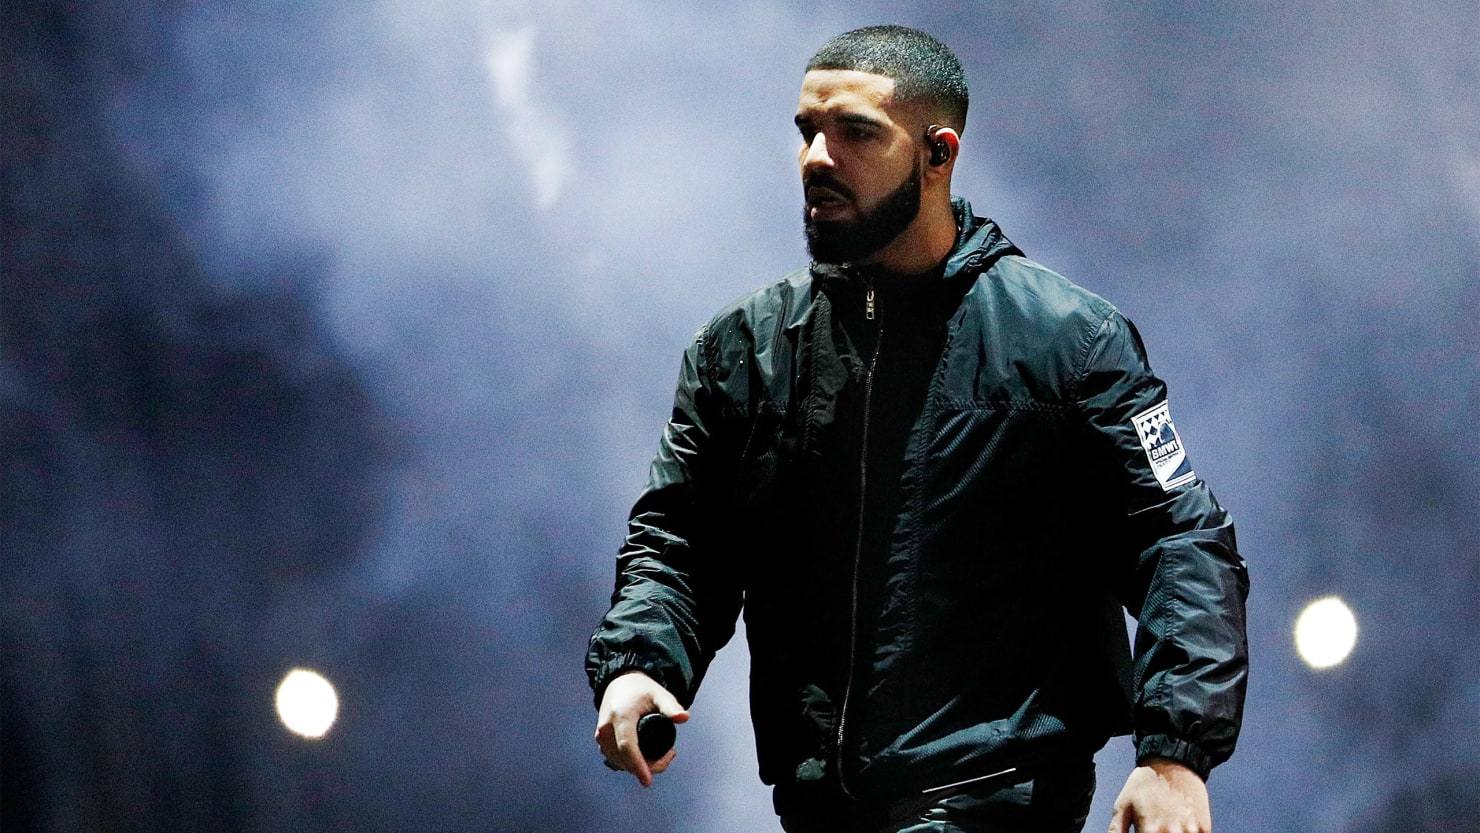 Drake Calls Out A Fan Caught Groping Women At His Show I